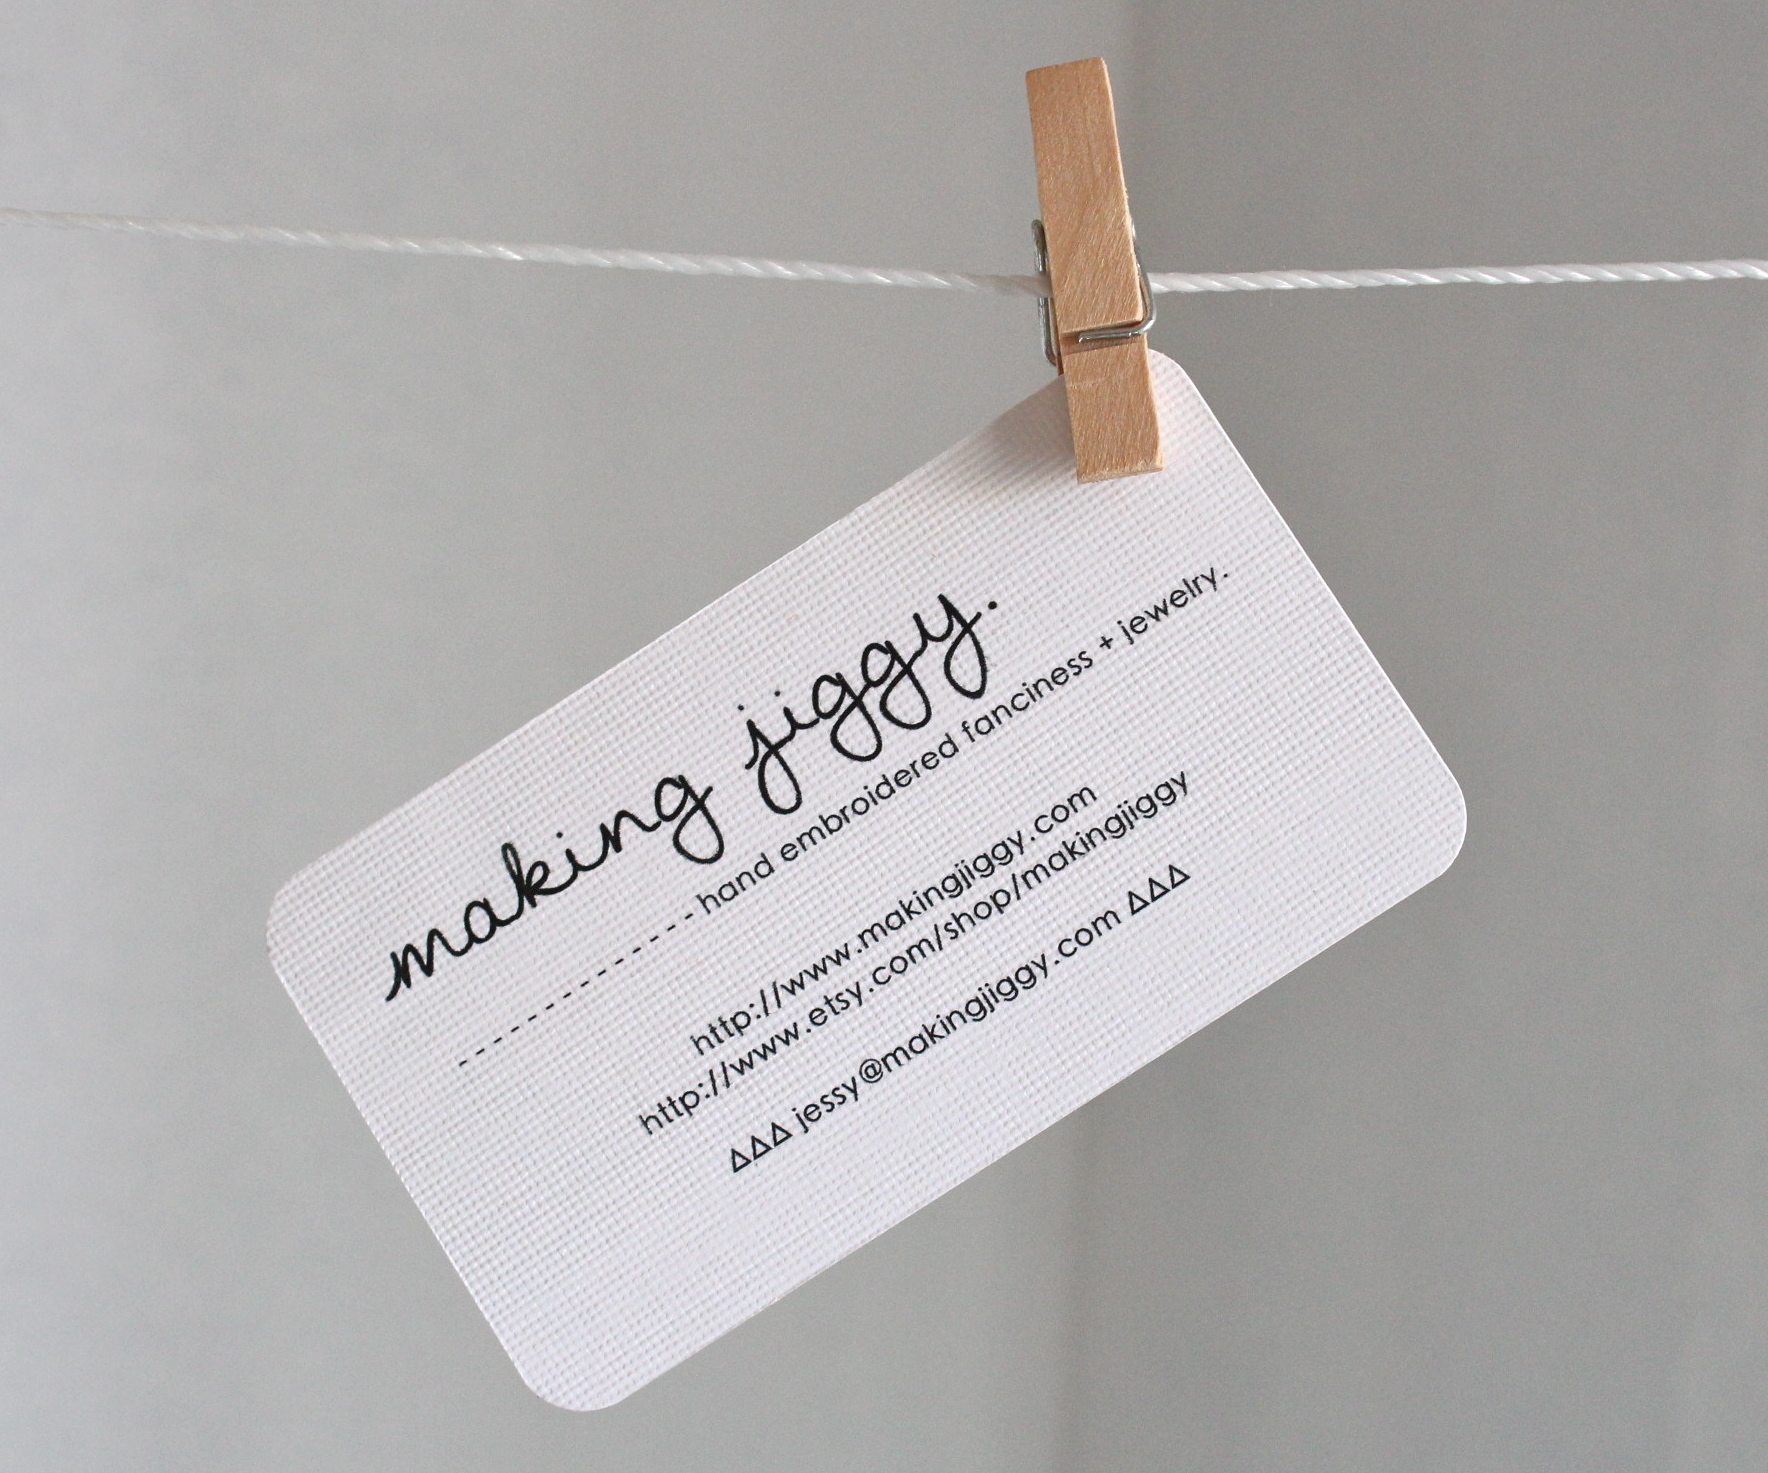 print your own business cards using Pages